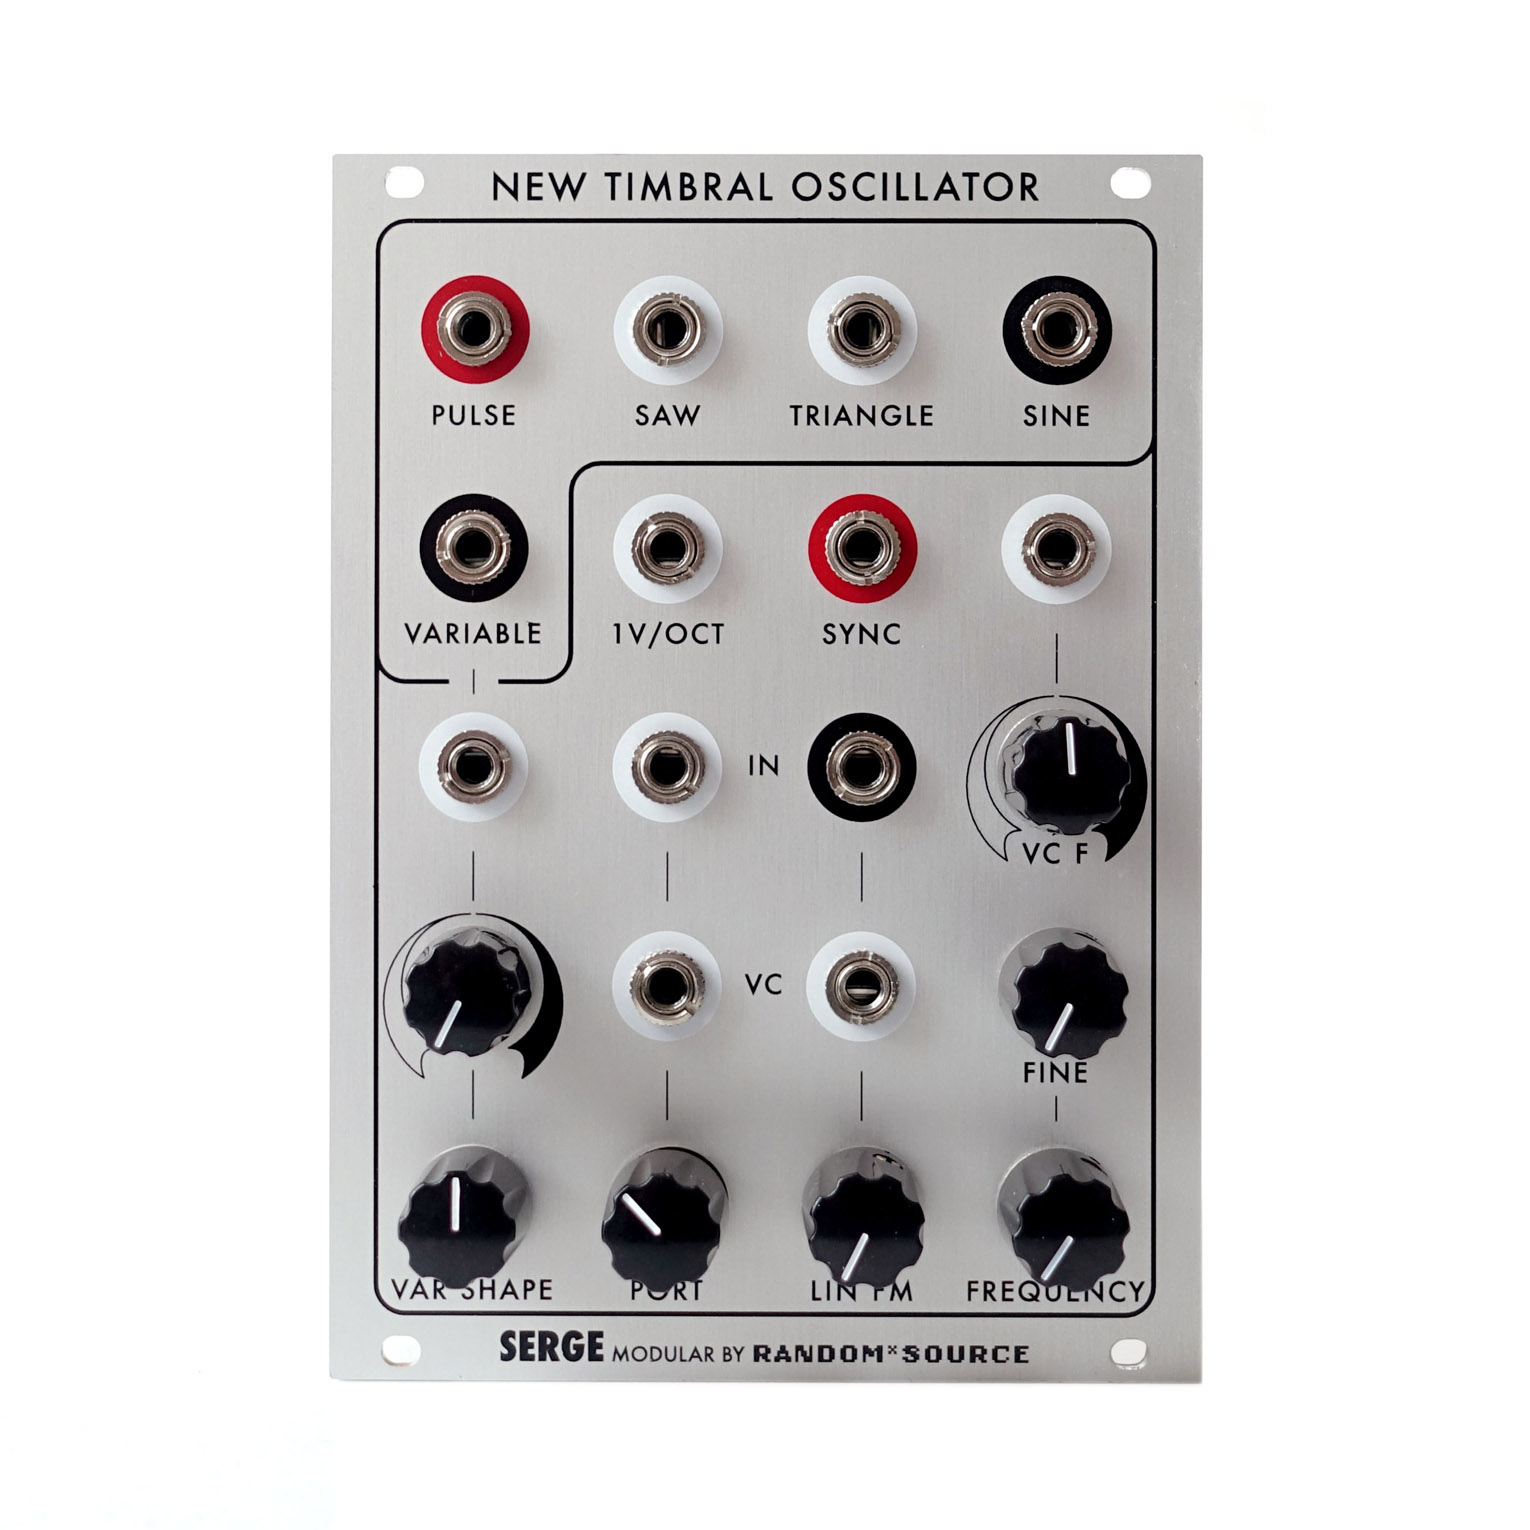 Serge New Timbral Oscillator (NTO) by Random*Source